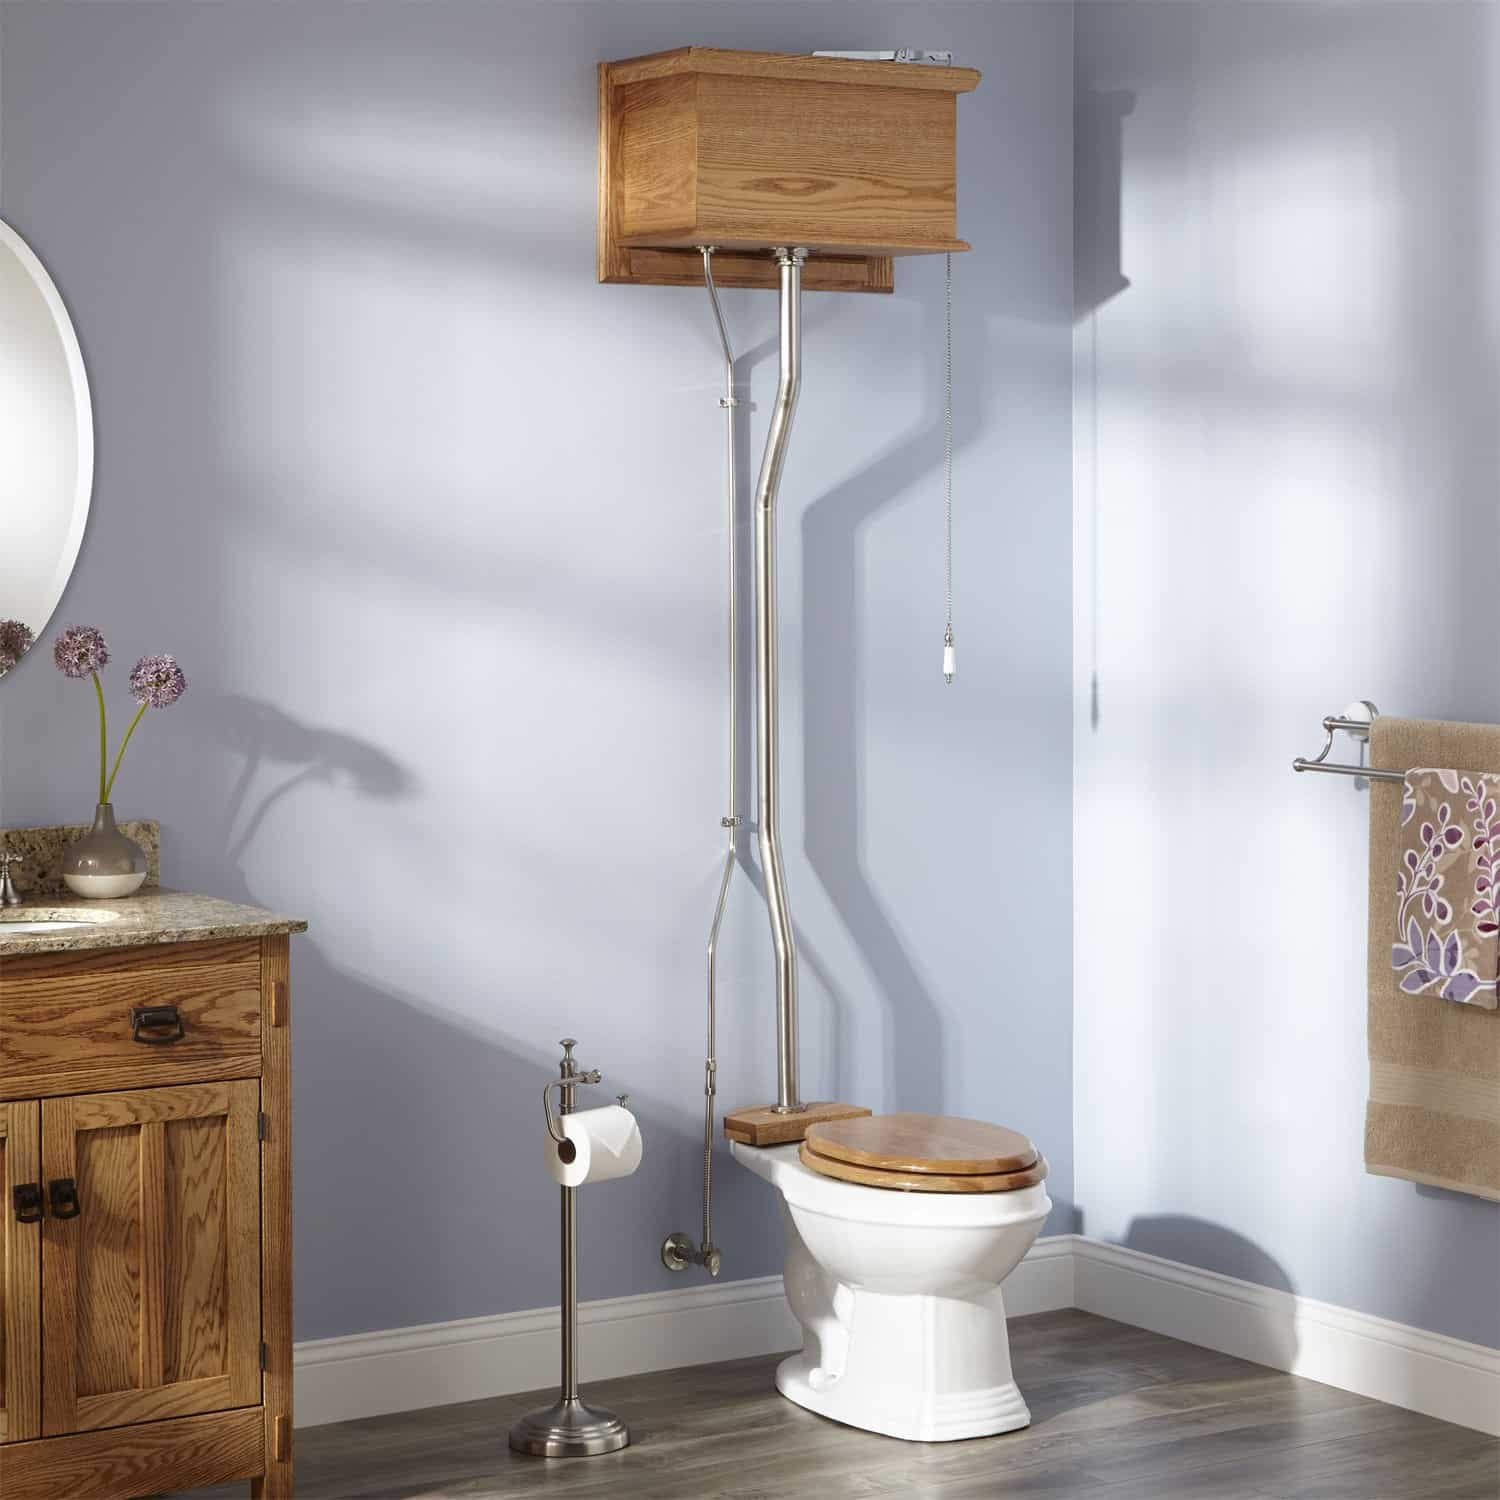 Best toilet on the market reviews - High Tank Pull Chain Toilets